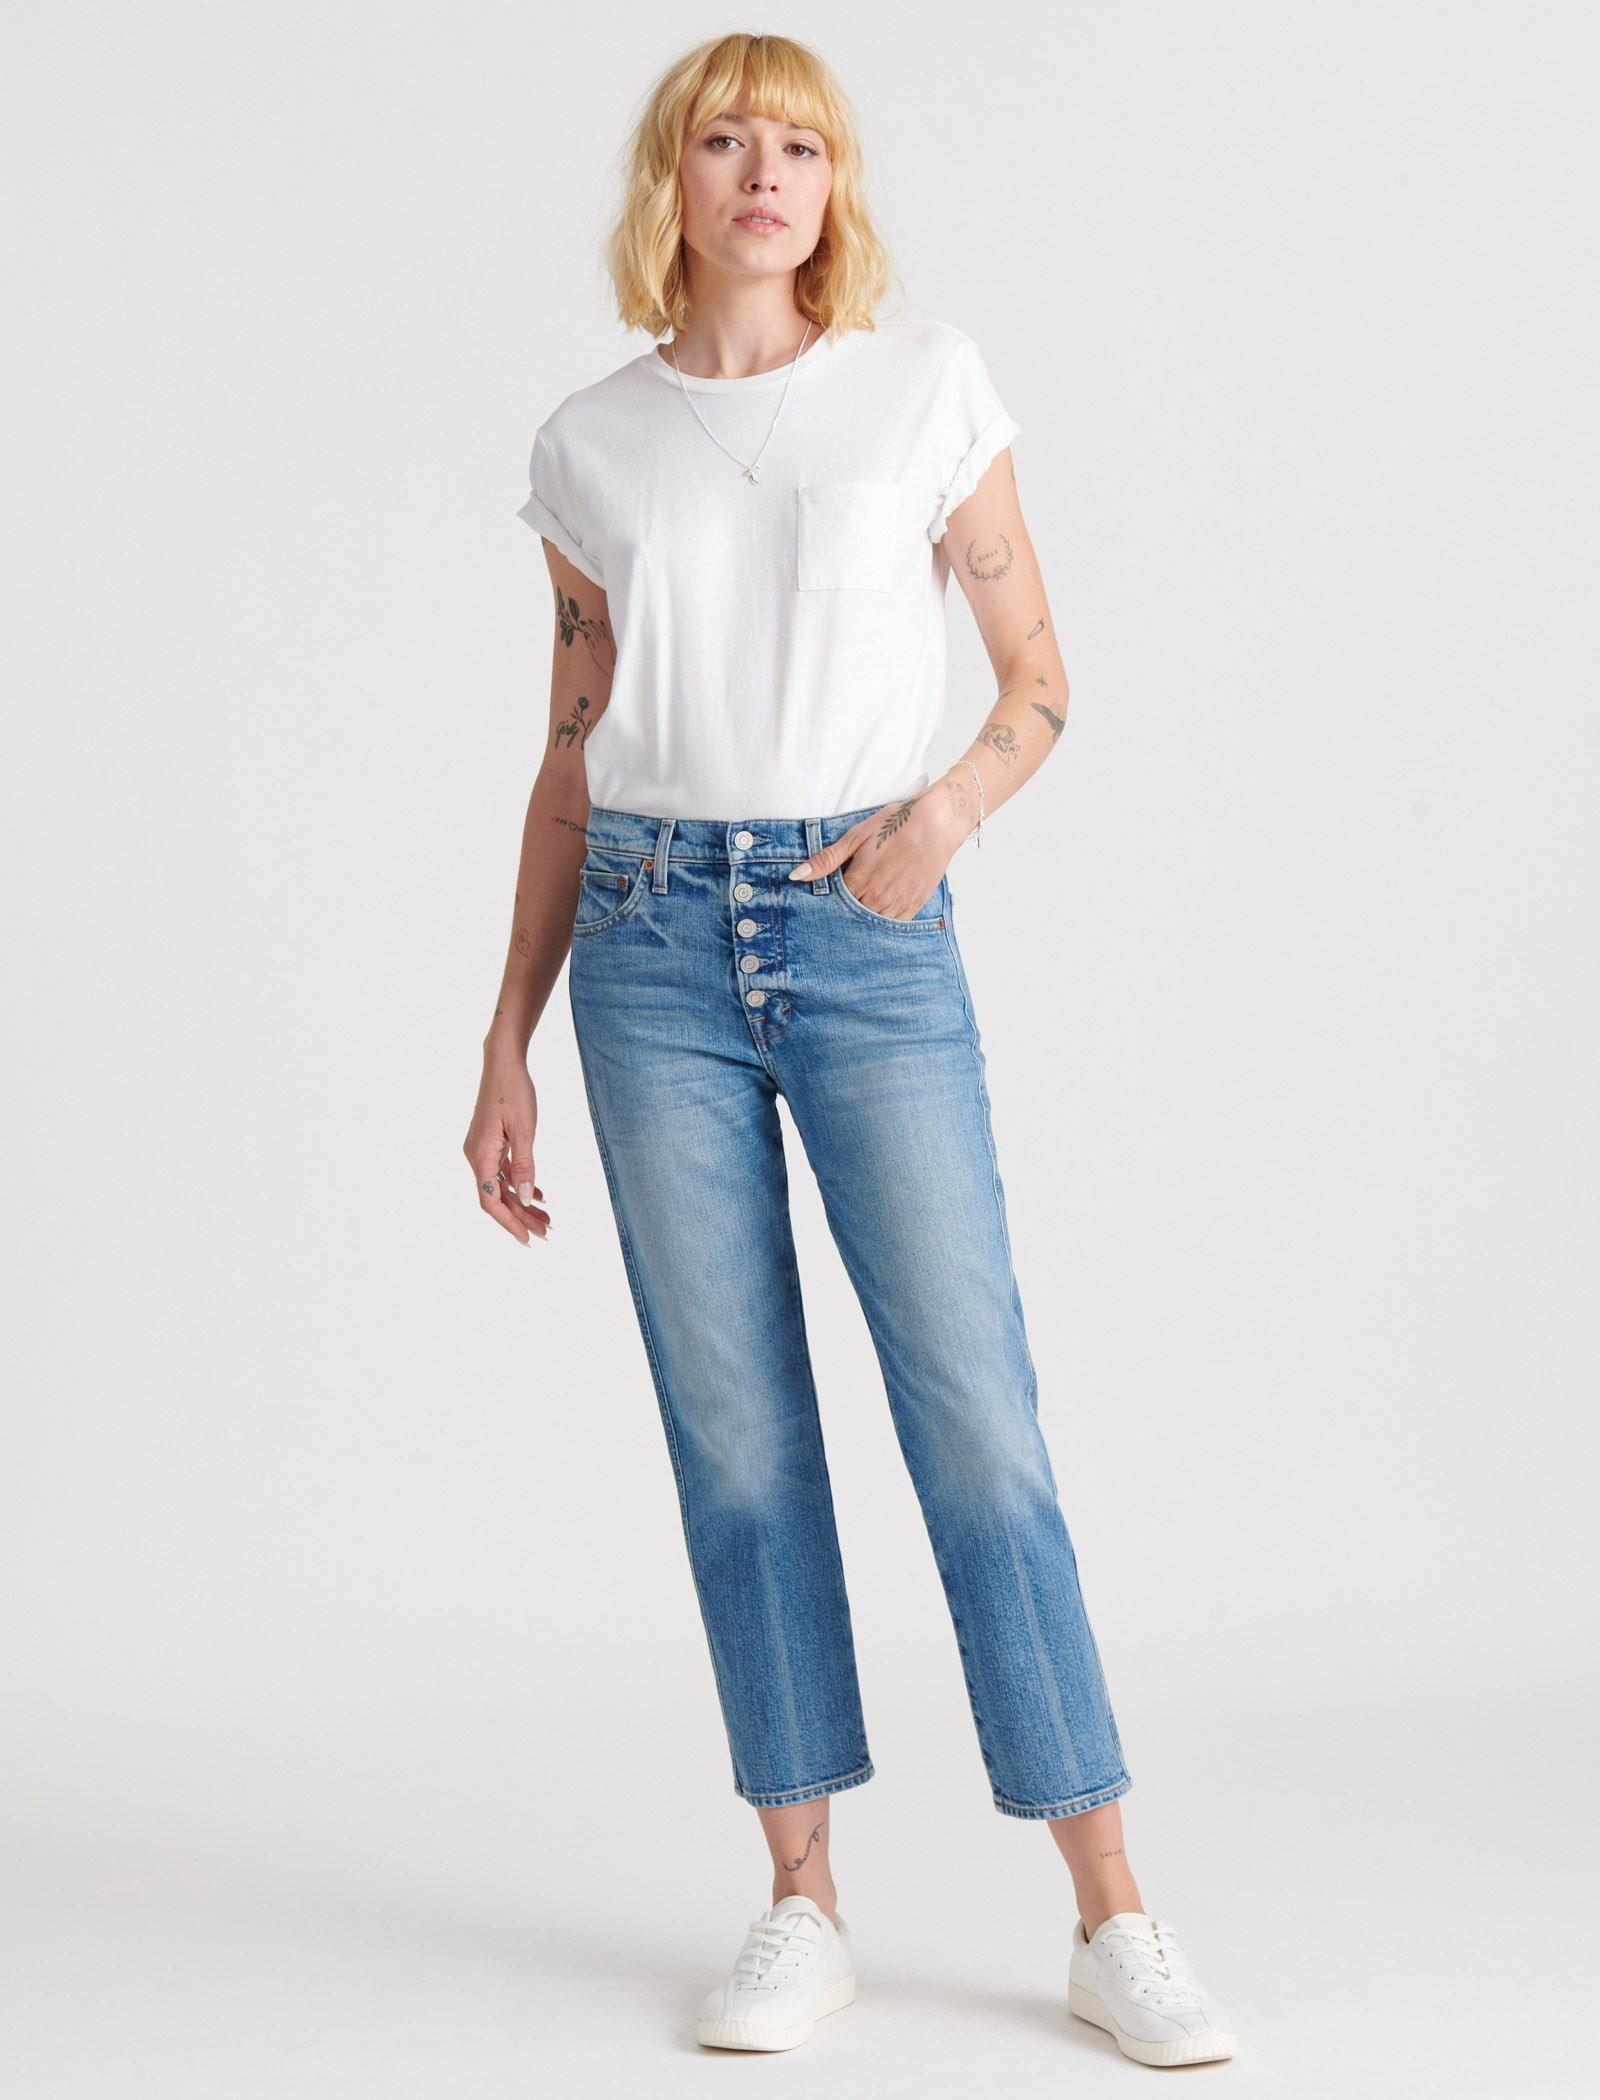 MID RISE AUTHENTIC STRAIGHT JEAN, image 1